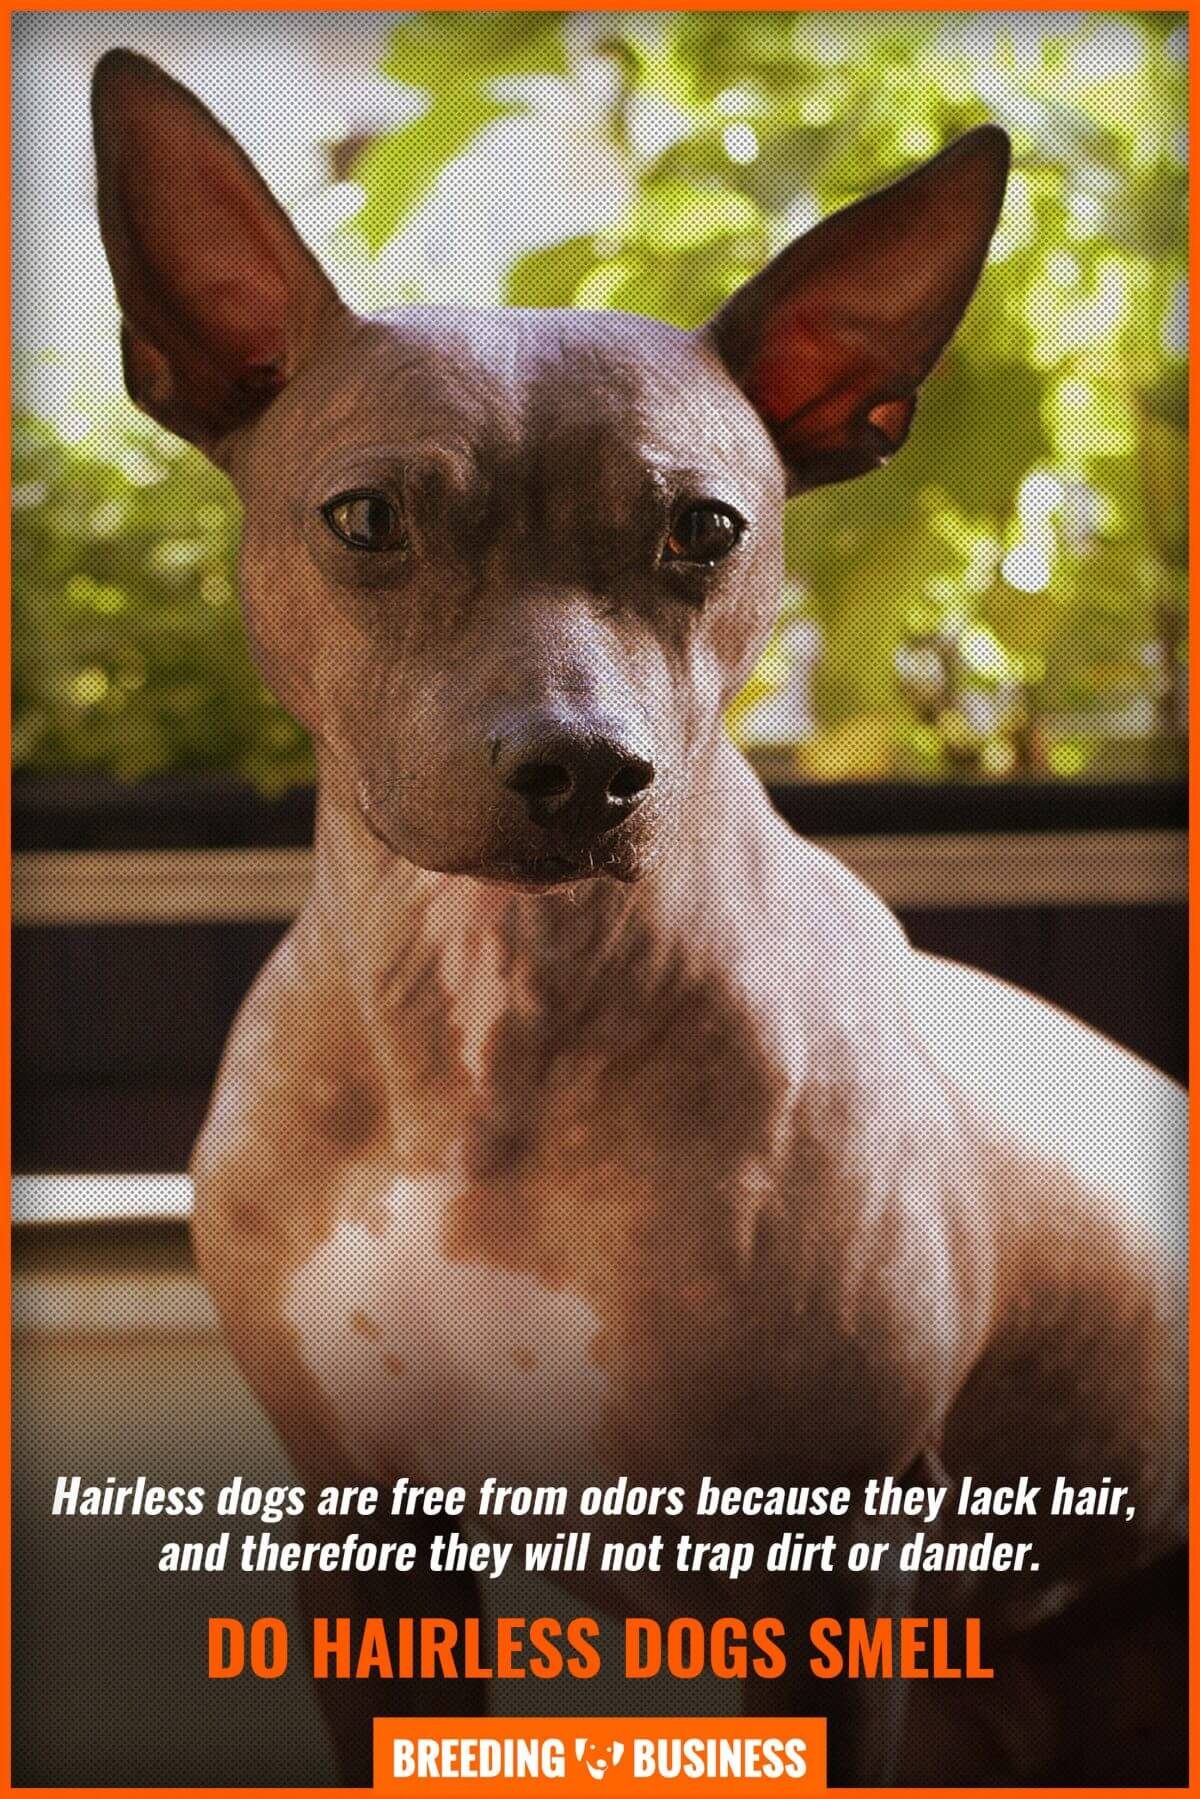 Do hairless dogs smell?